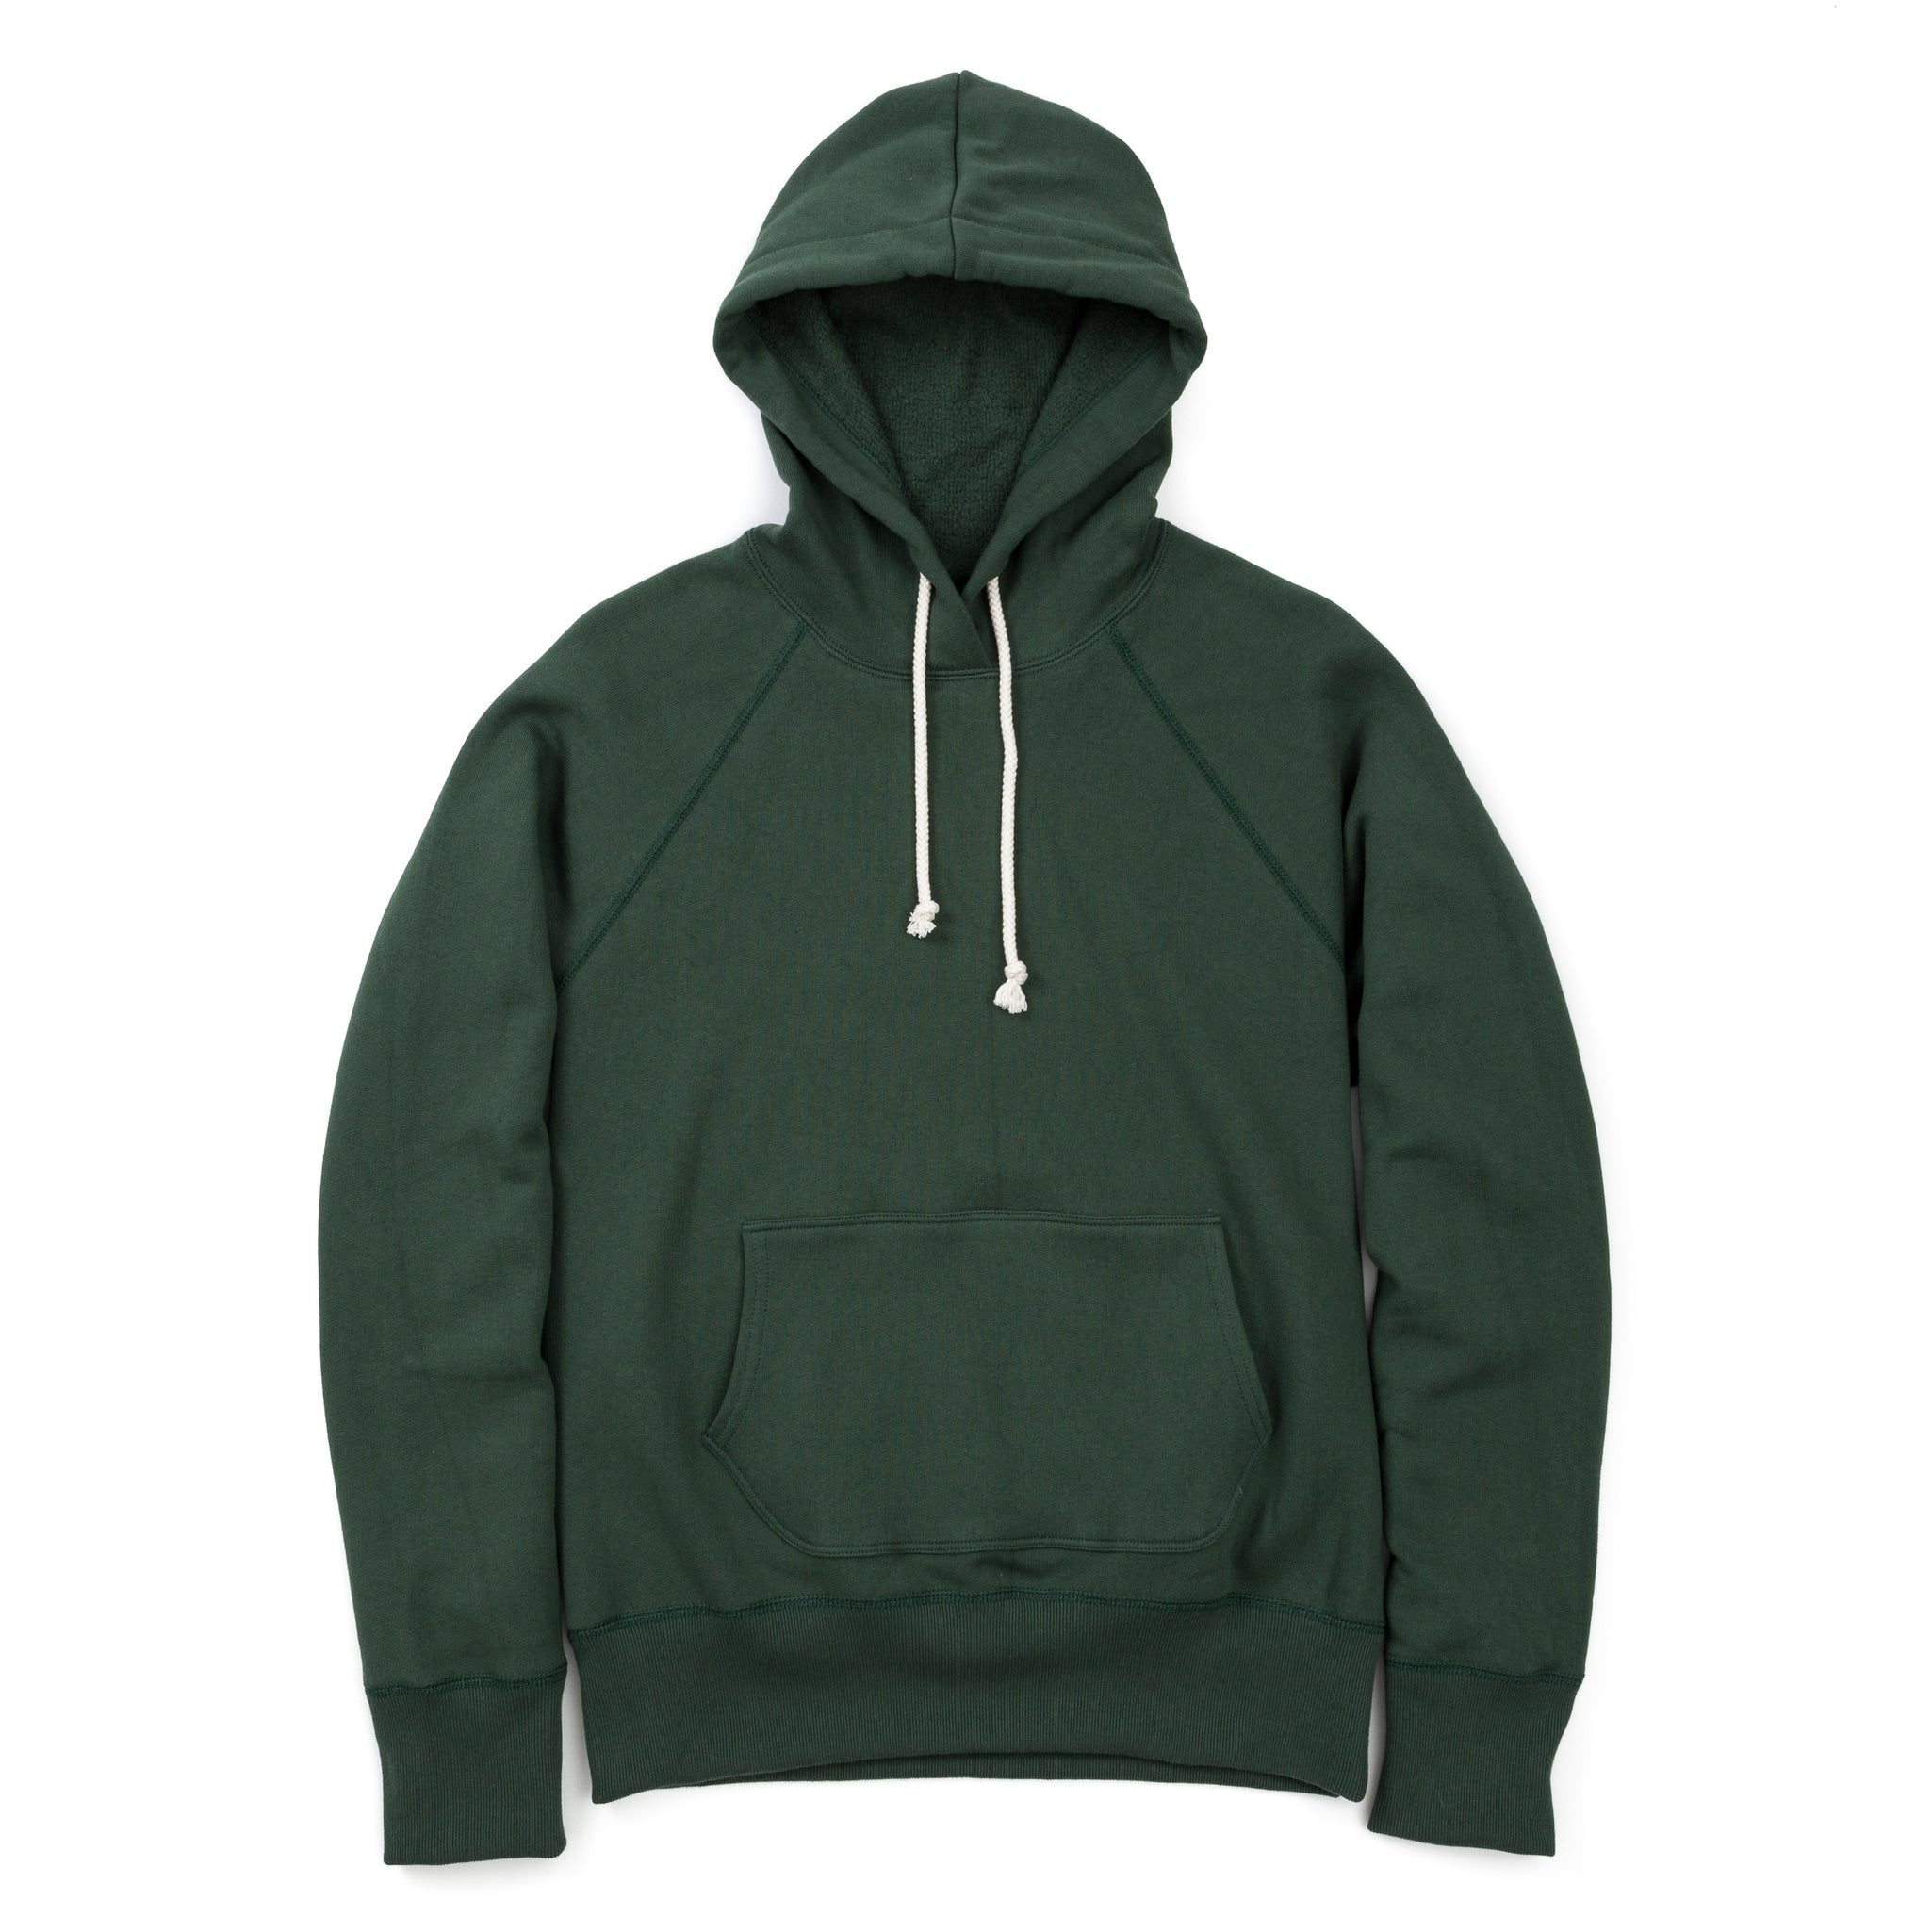 VAT DYE HOODED SWEATSHIRT